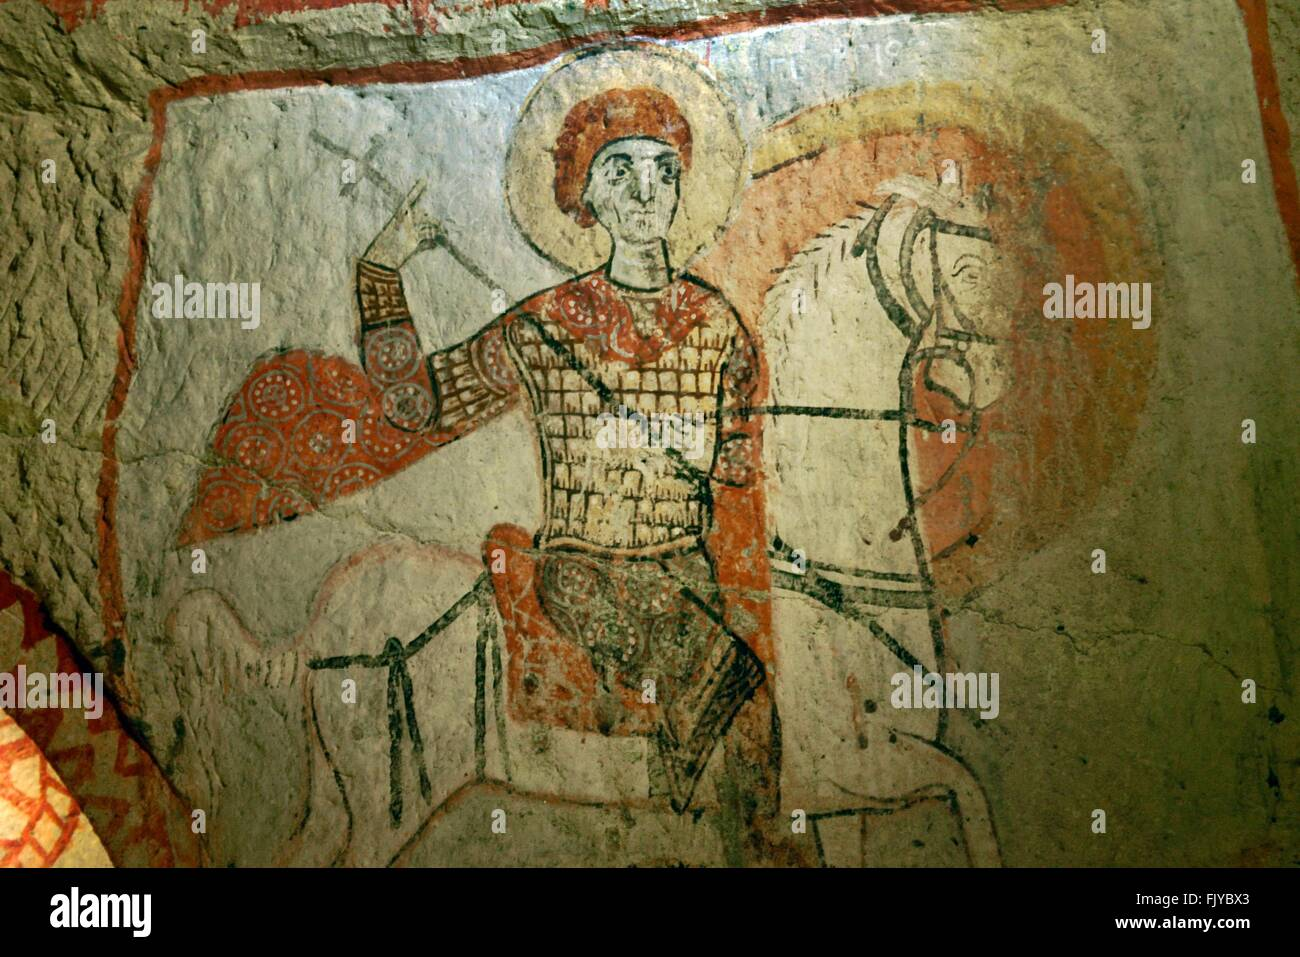 Early christian mural saint george slaying dragon in rock for Christian mural